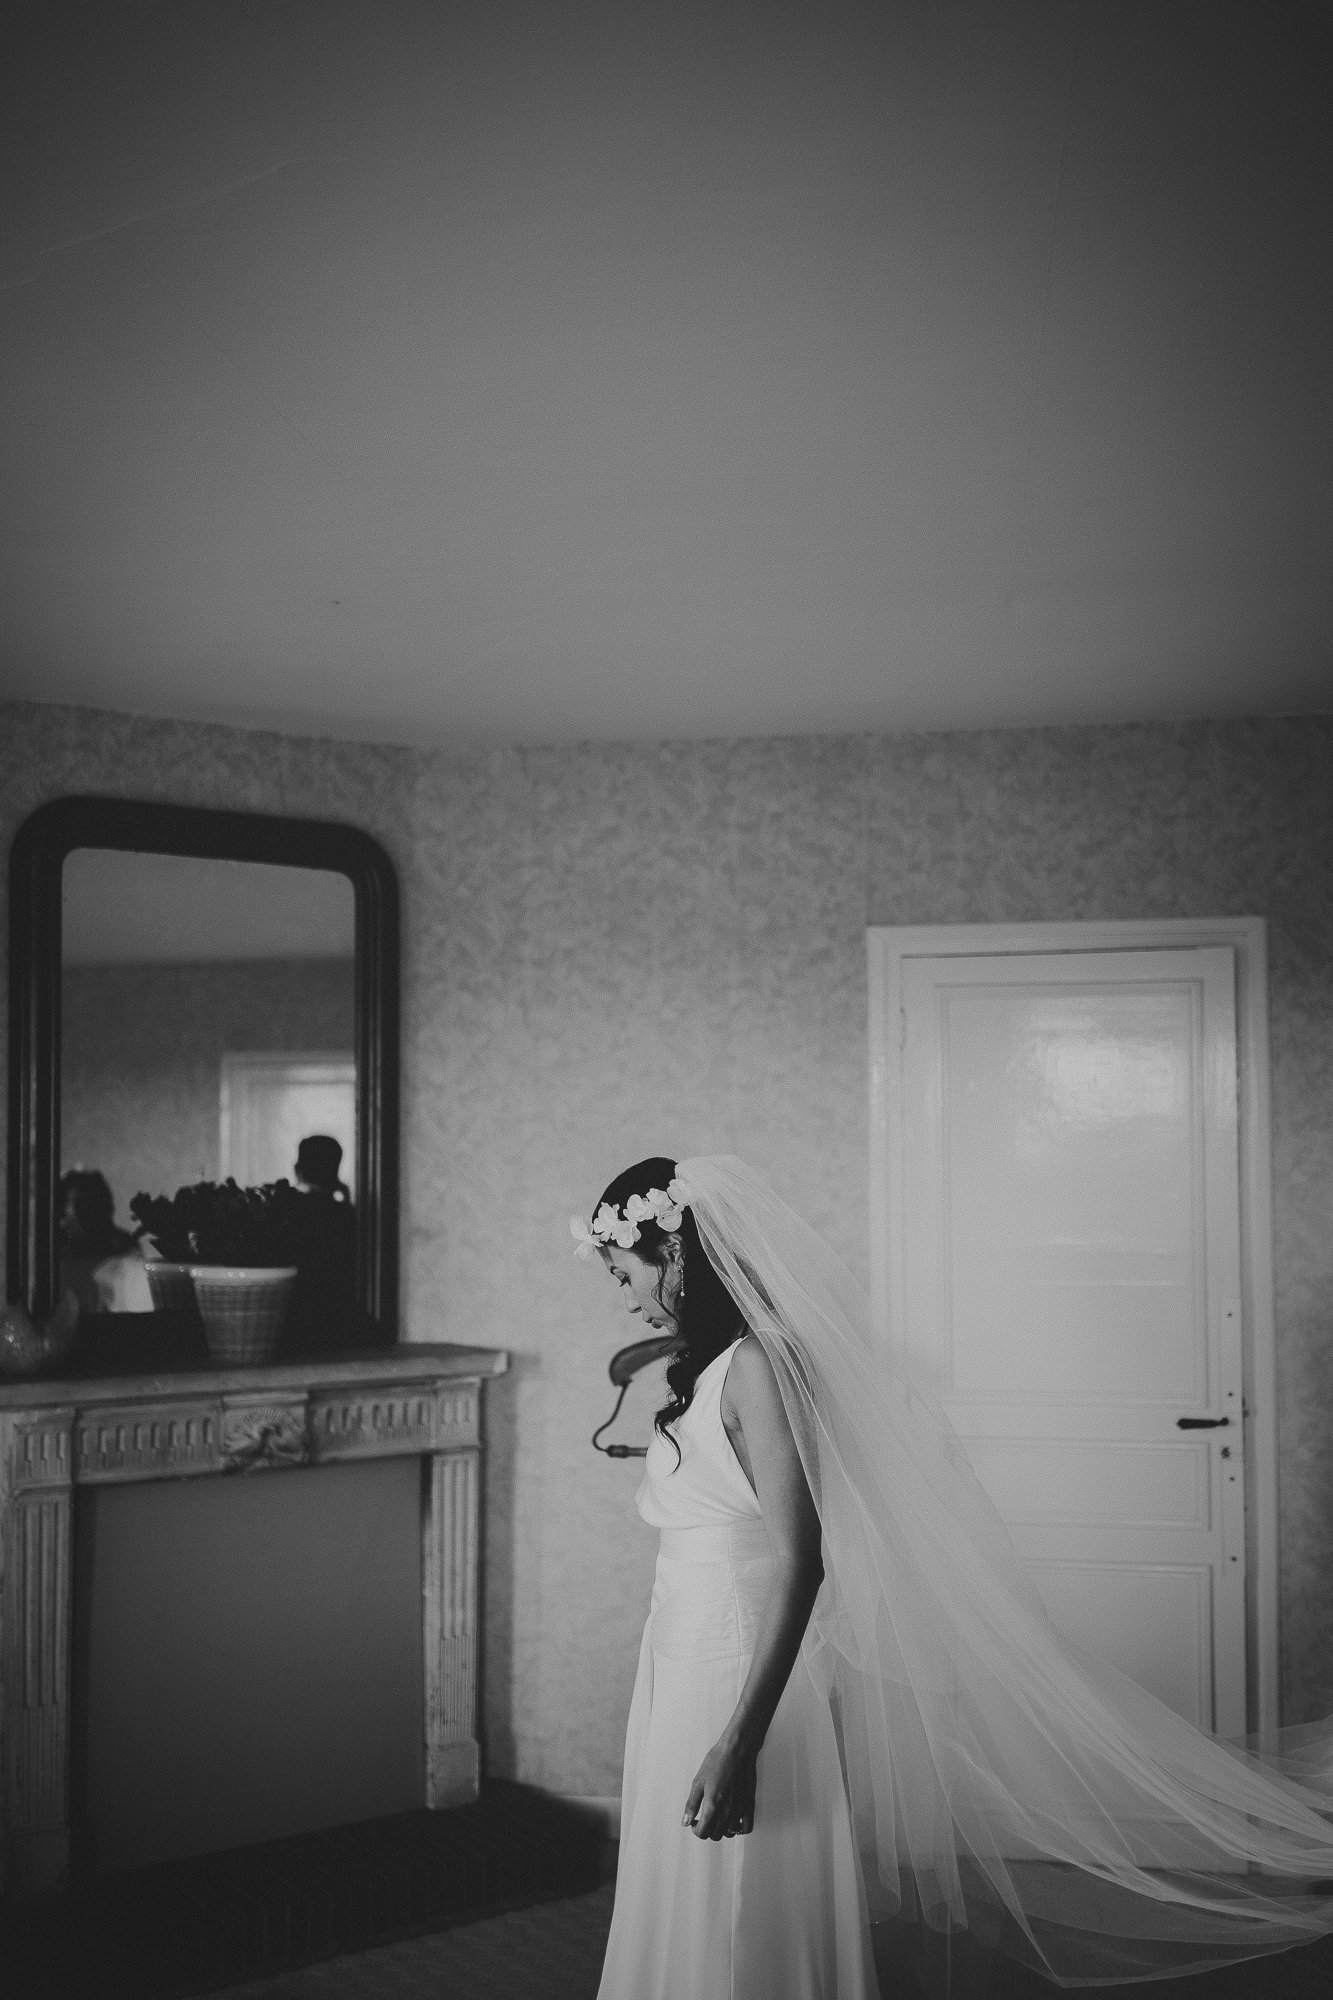 mariage multiculturel Evreux / photographe happy moon/ publié sur withaloveikethat.fr